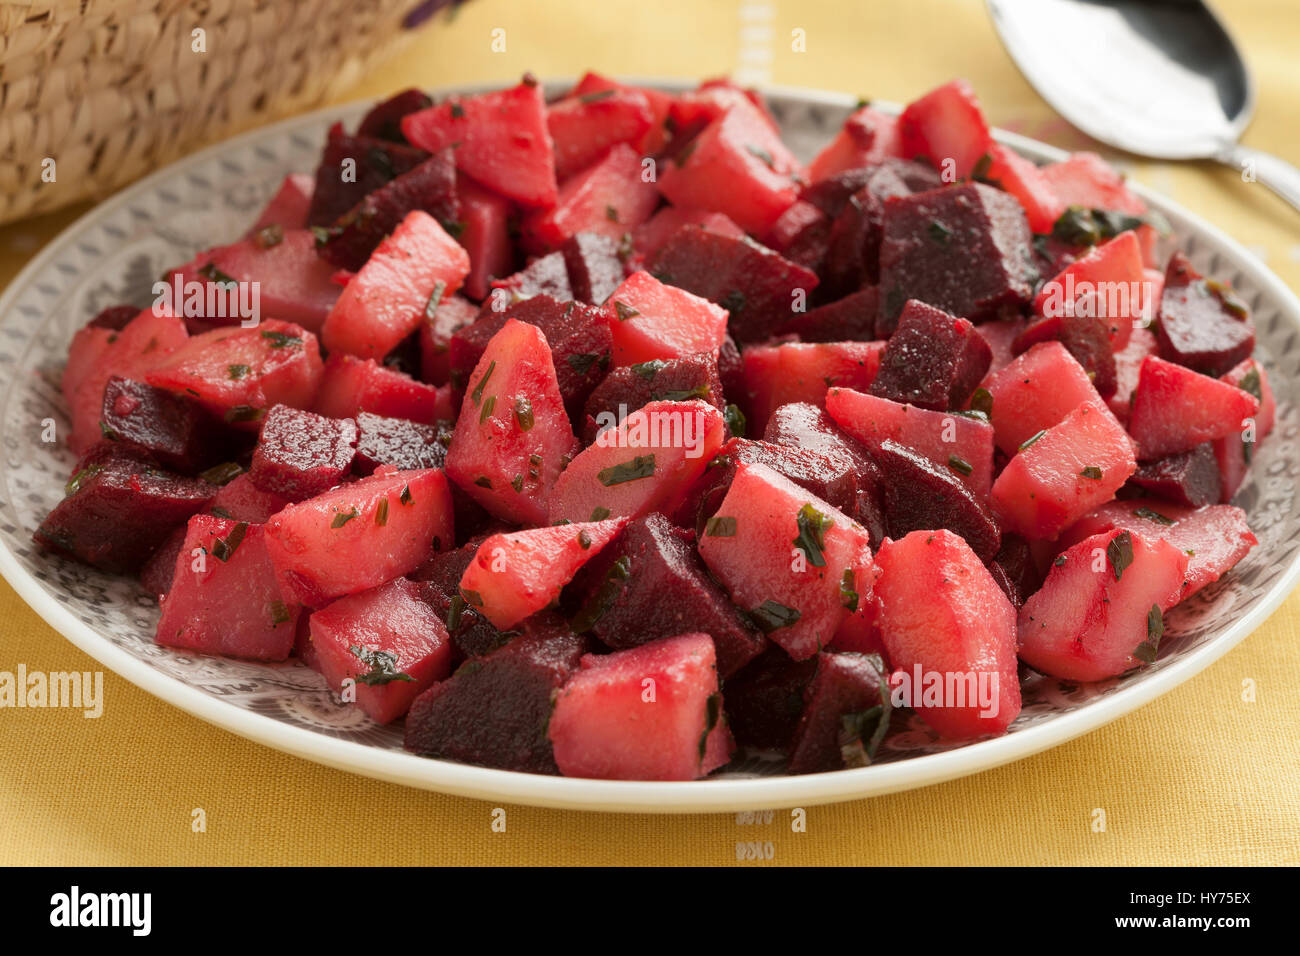 Dish with Moroccan salad with beets and potatoes close up - Stock Image